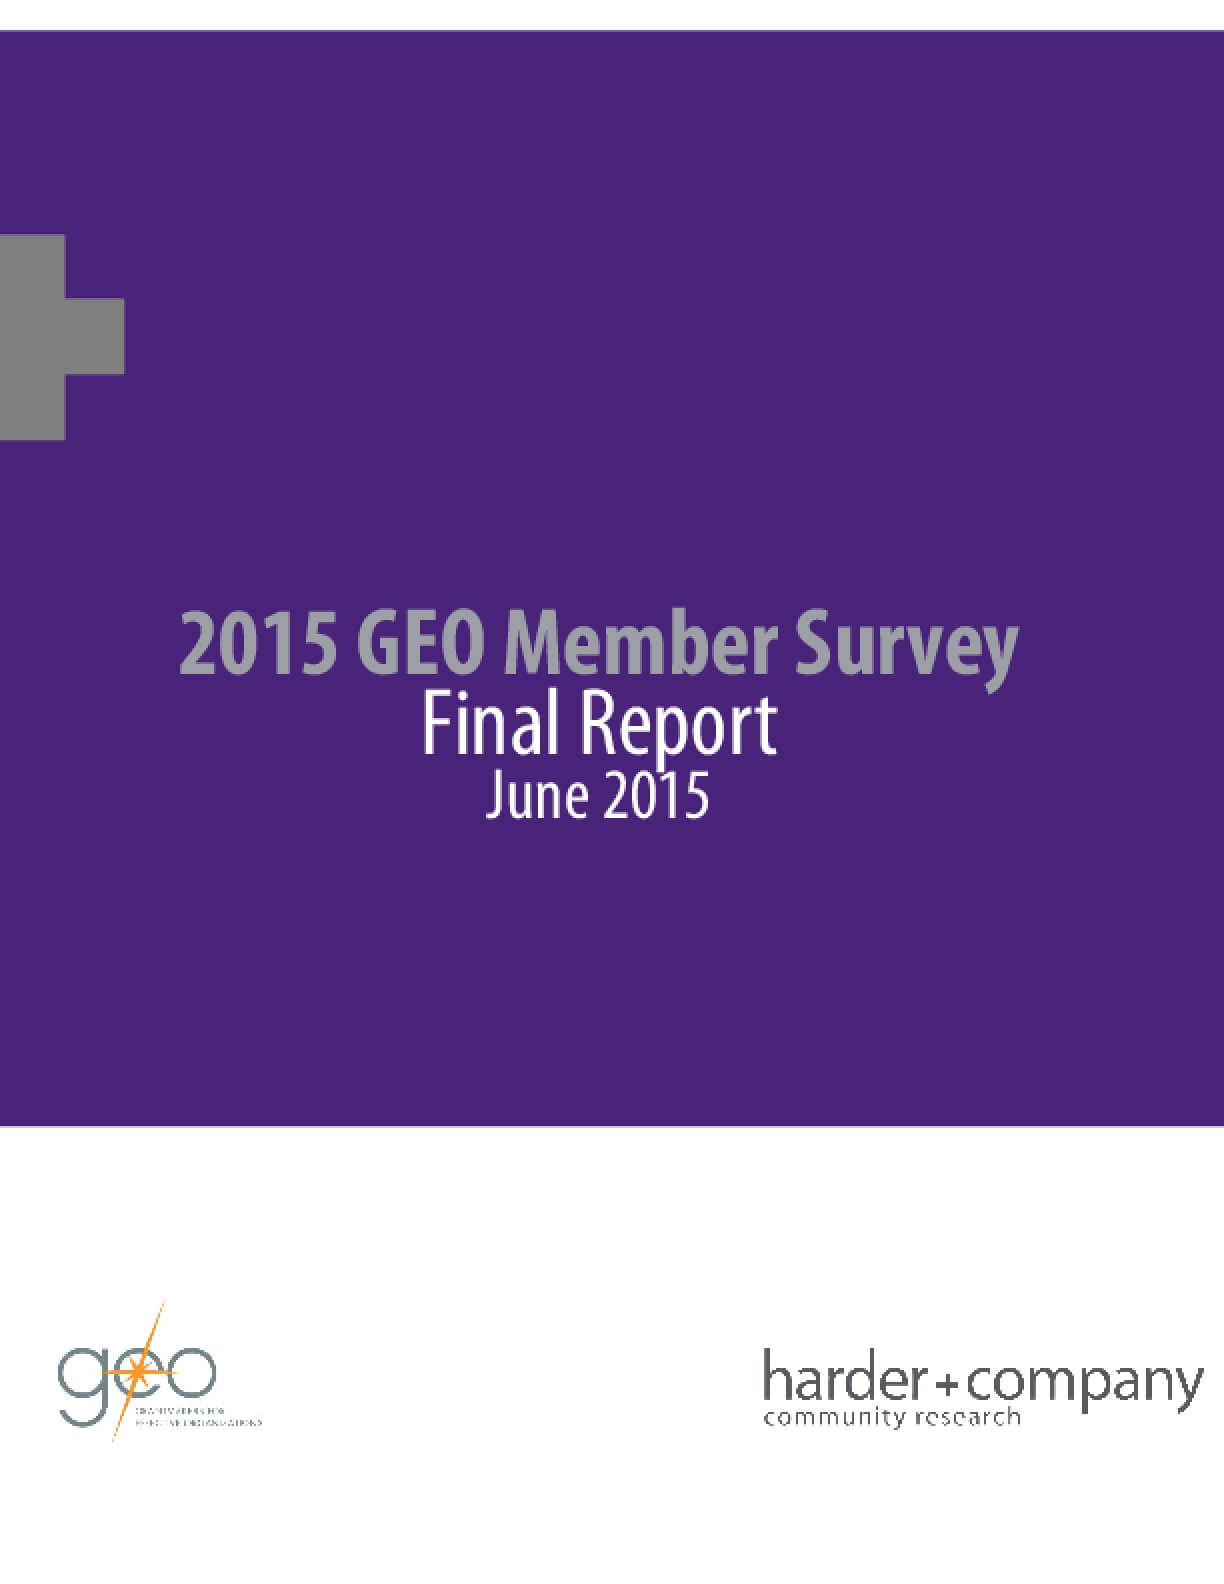 2015 GEO Member Survey Final Report